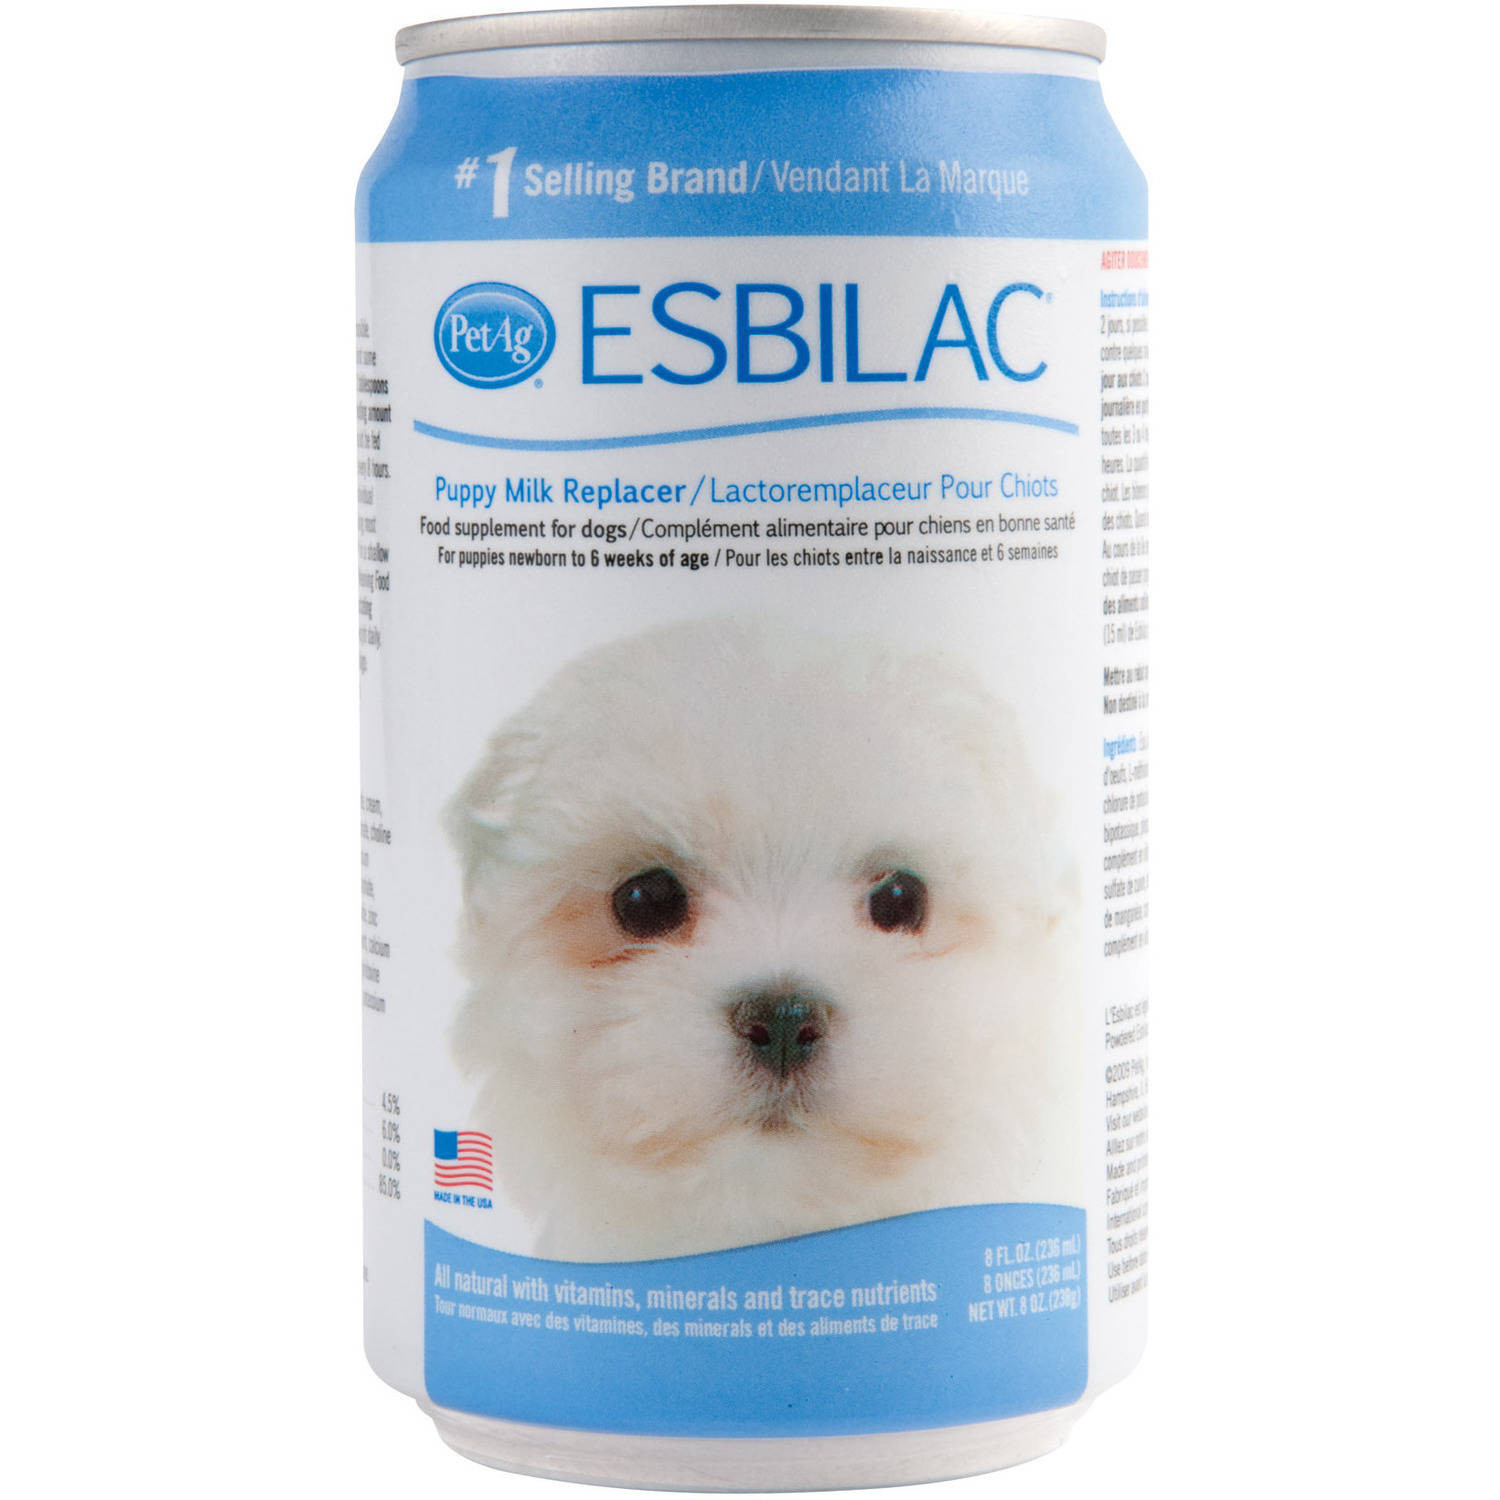 Esbilac Liquid Milk Replacer for Puppy (236ml)